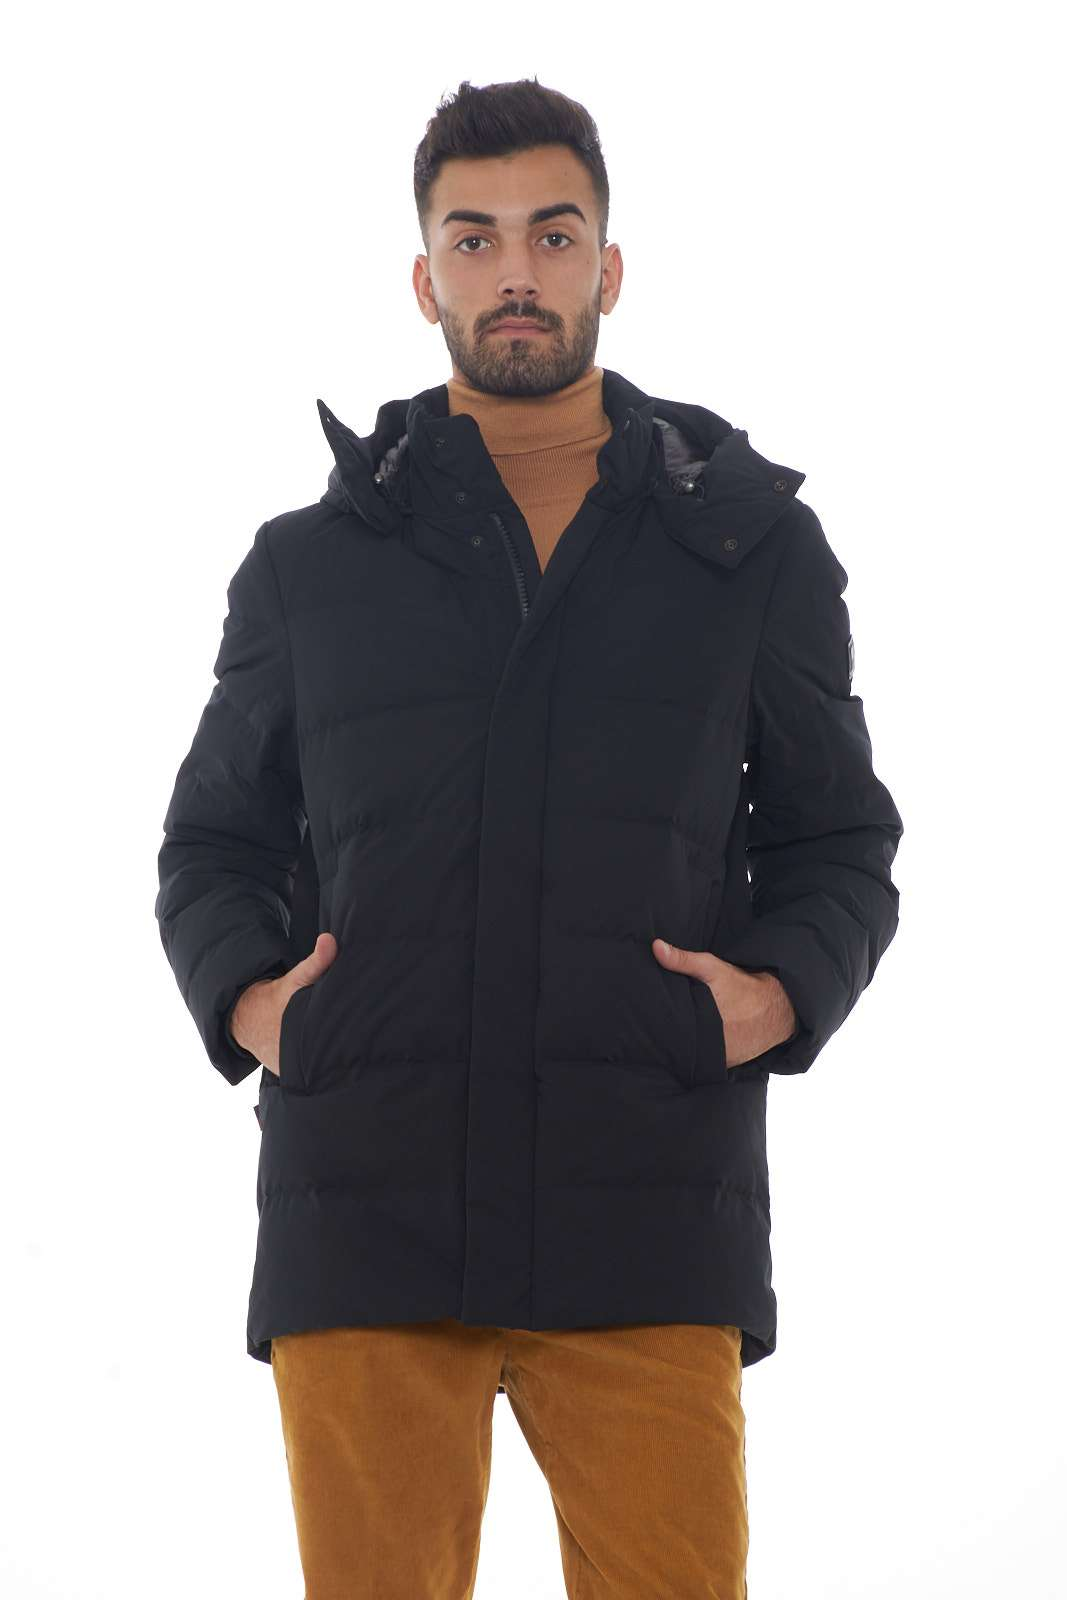 https://www.parmax.com/media/catalog/product/a/i/AI-outlet_parmax-giubbino-uomo-Woolrich-WOLOW0009-A.jpg